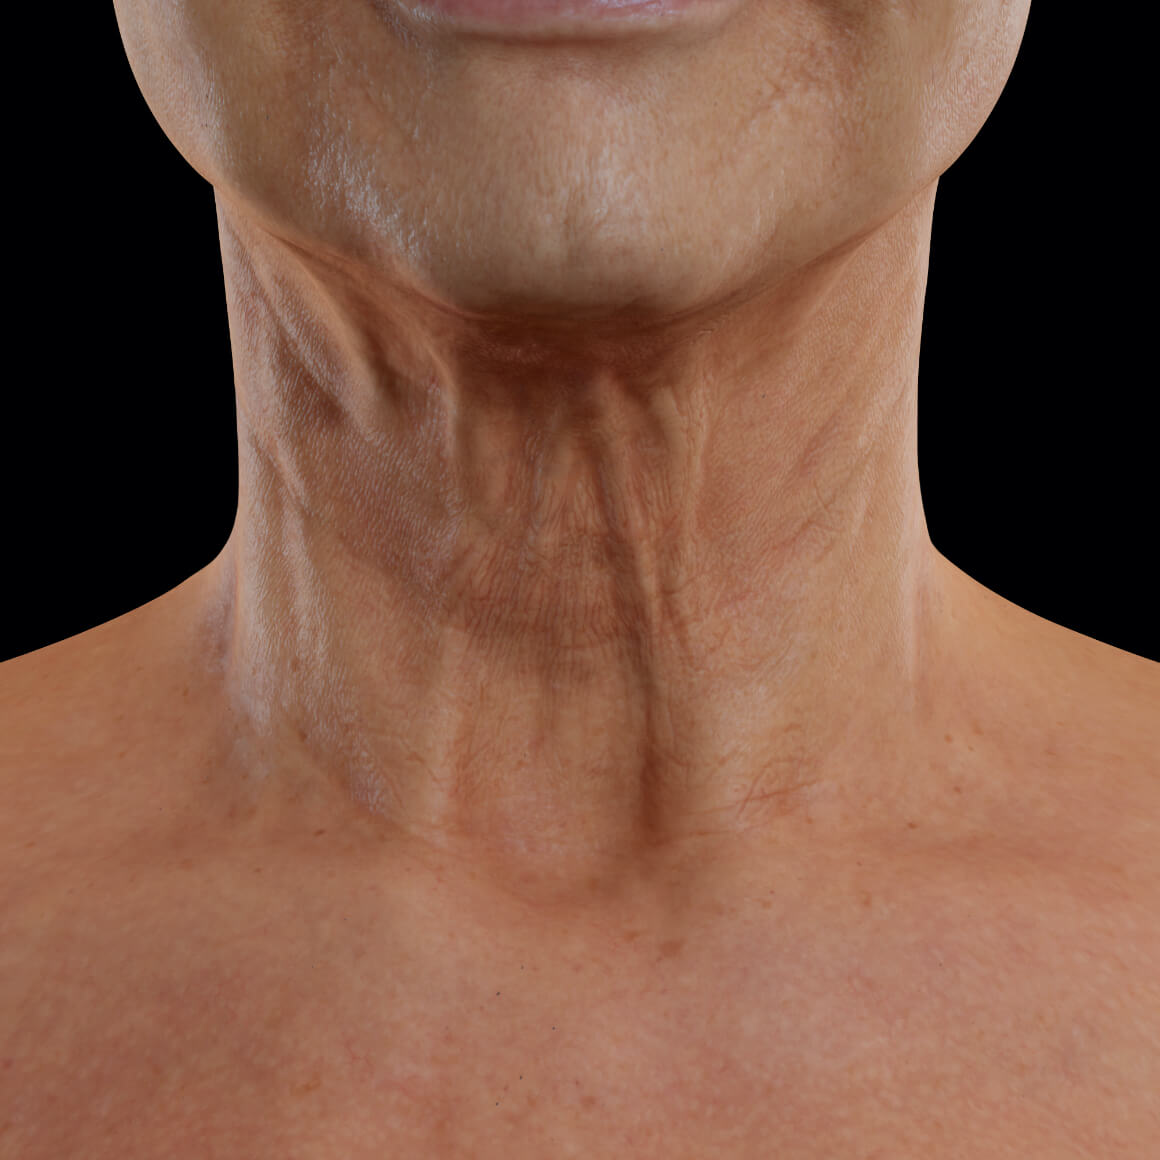 Female patient from Clinique Chloé facing front showing laxity in the skin of the neck